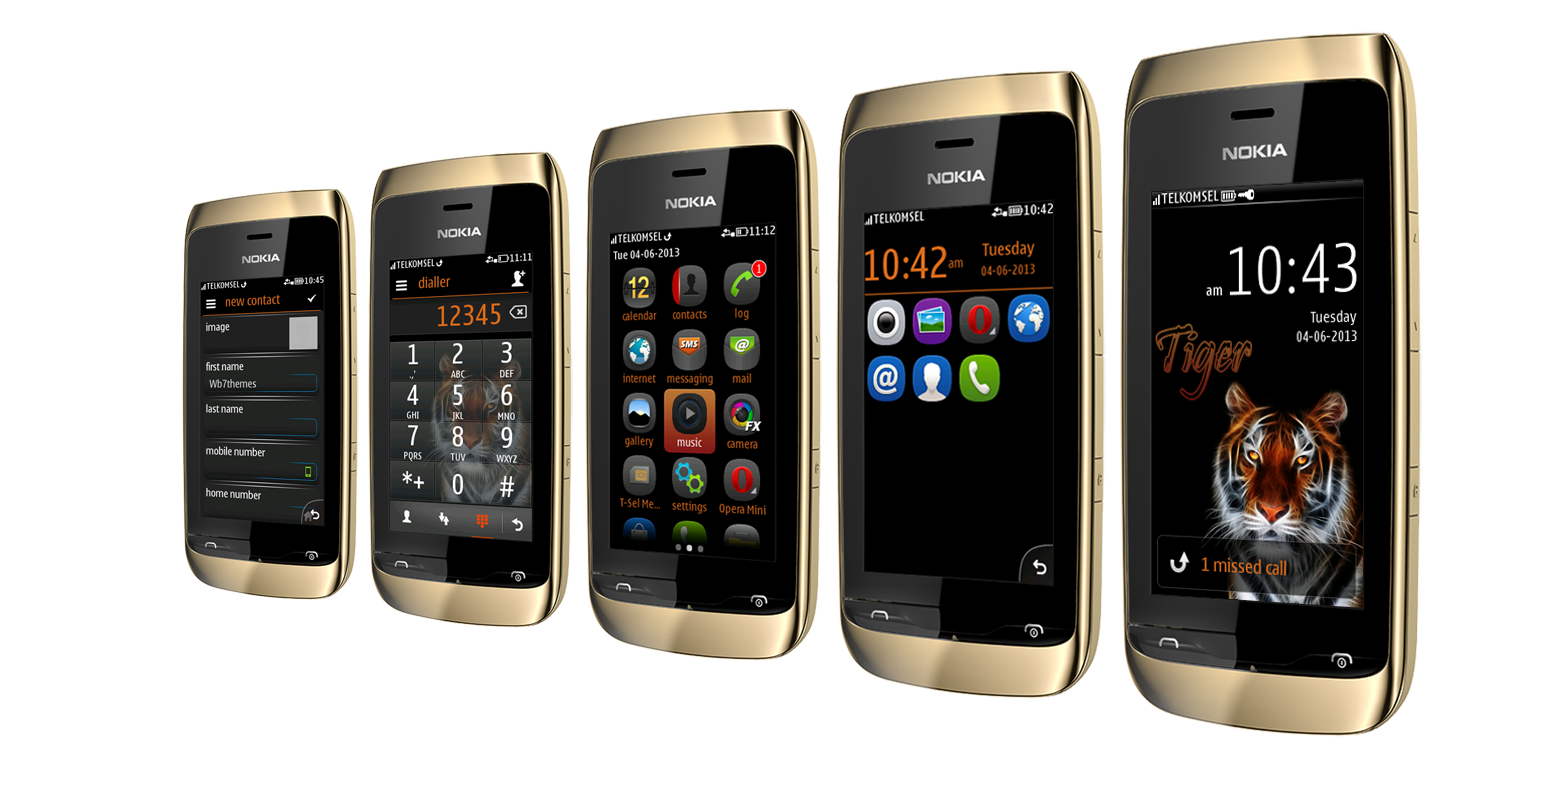 Supported phone: Asha 311 Asha 310 Asha 309 Asha 308 Asha 306 Asha 305